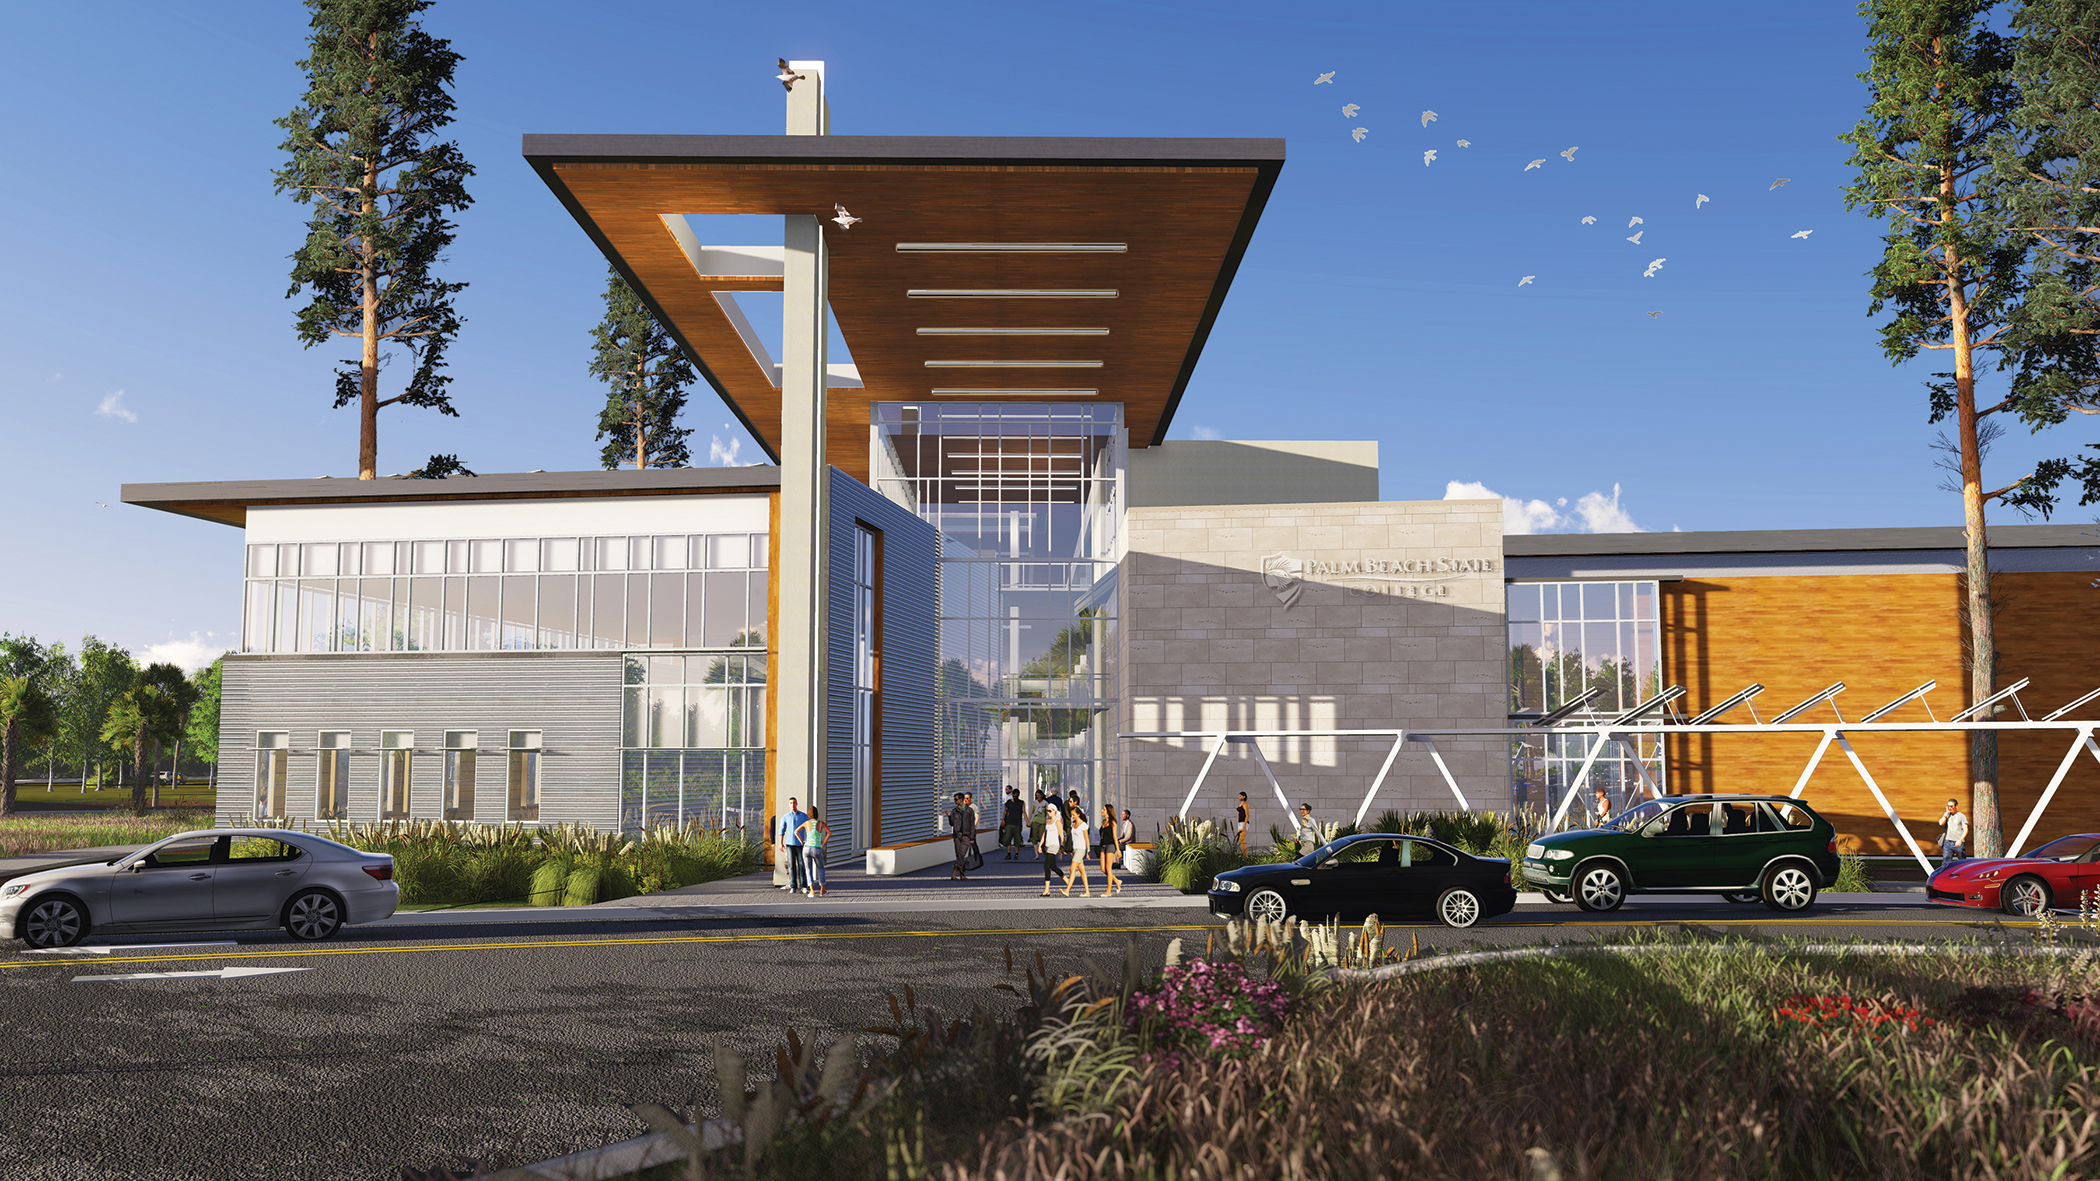 Artist's rendering of the Loxahatchee Groves campus. Designed by Zyscovich Architects, it is scheduled to open in 2016.